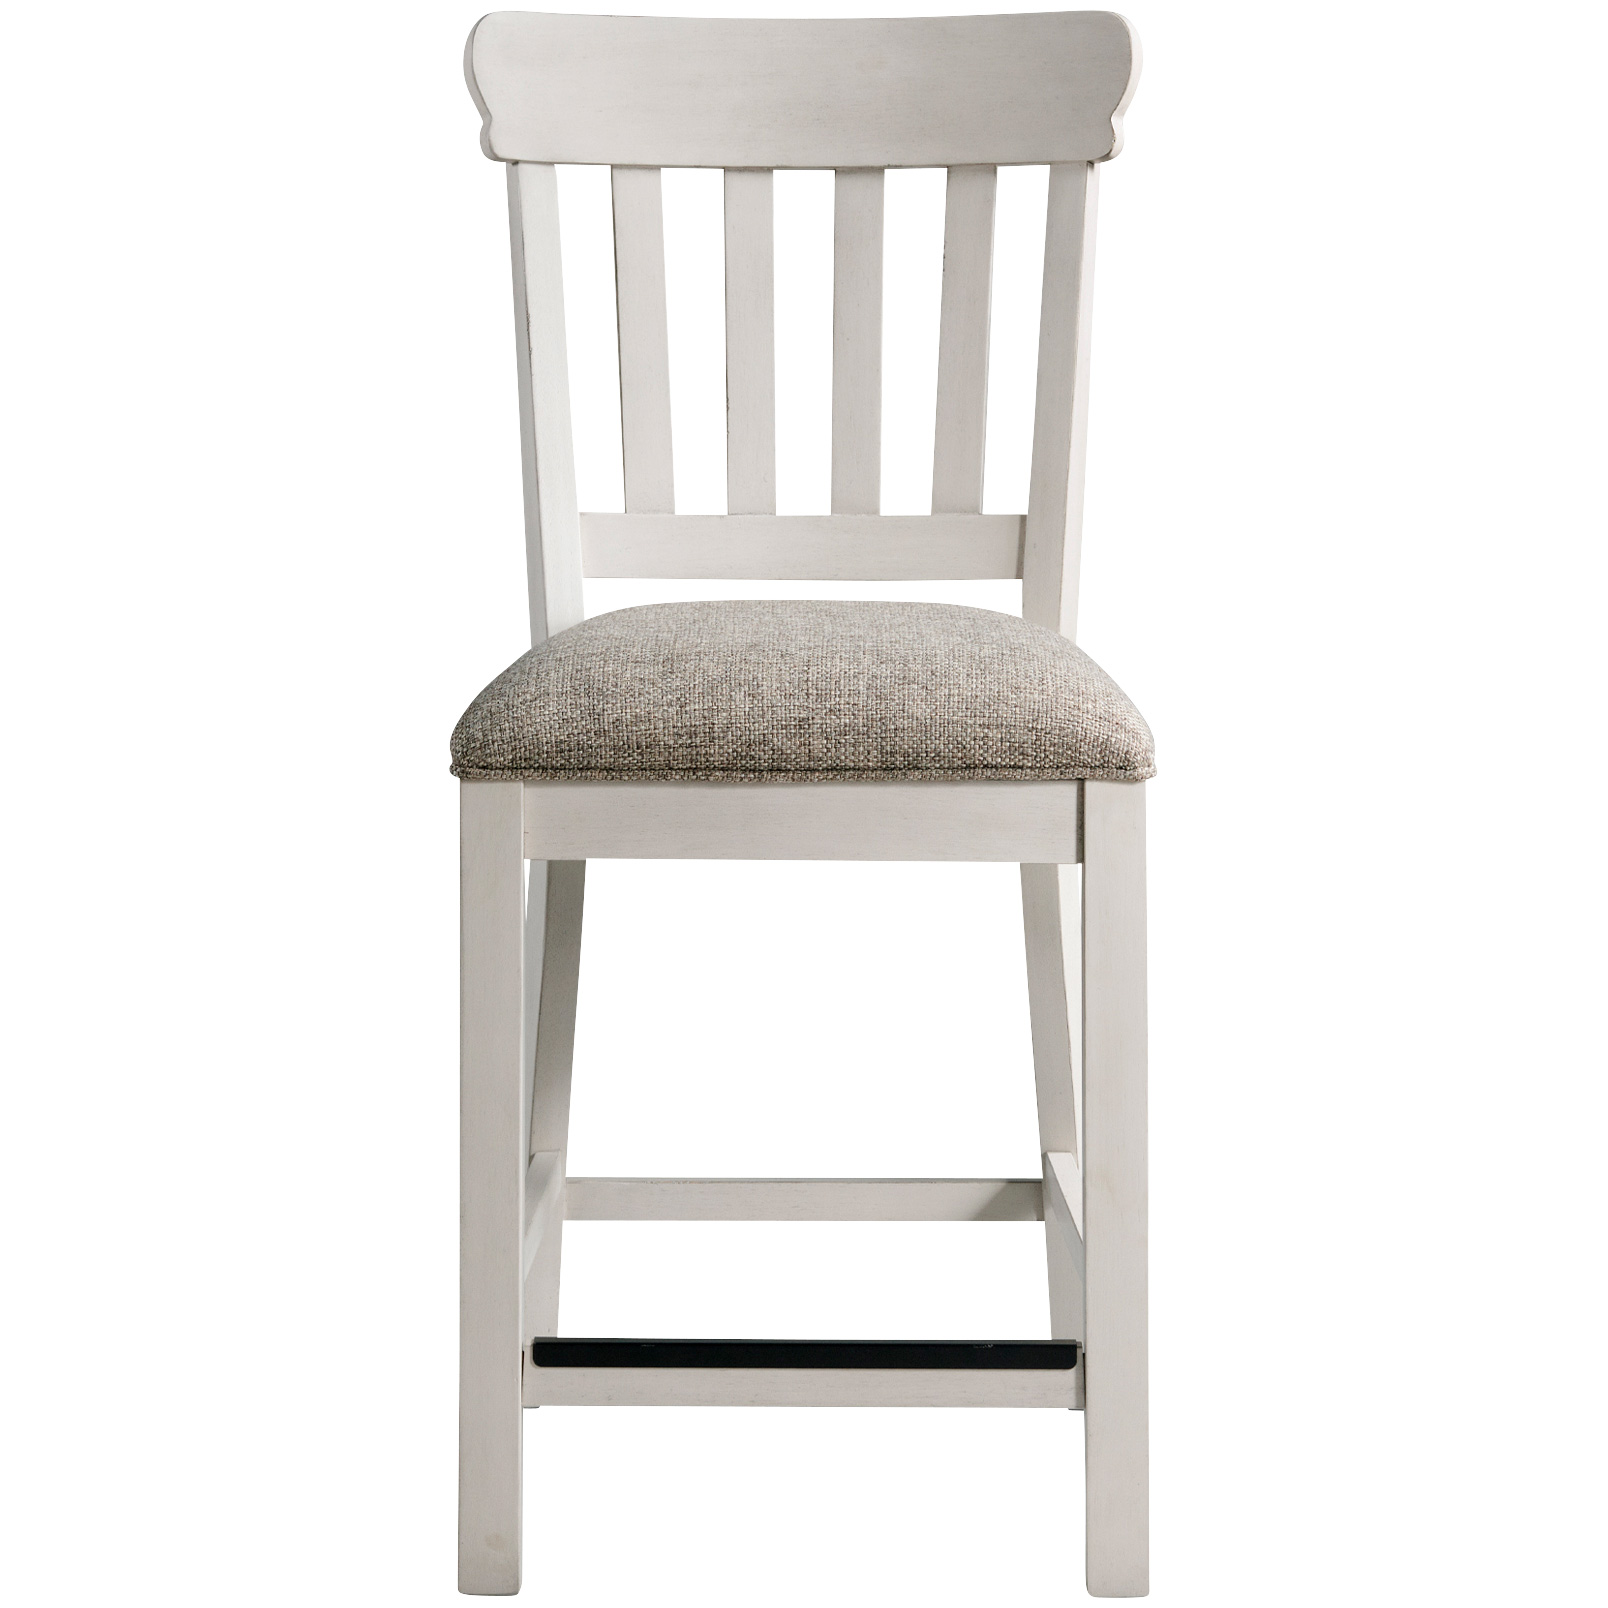 Intercon | Drake Rustic White Slat Back Barstool